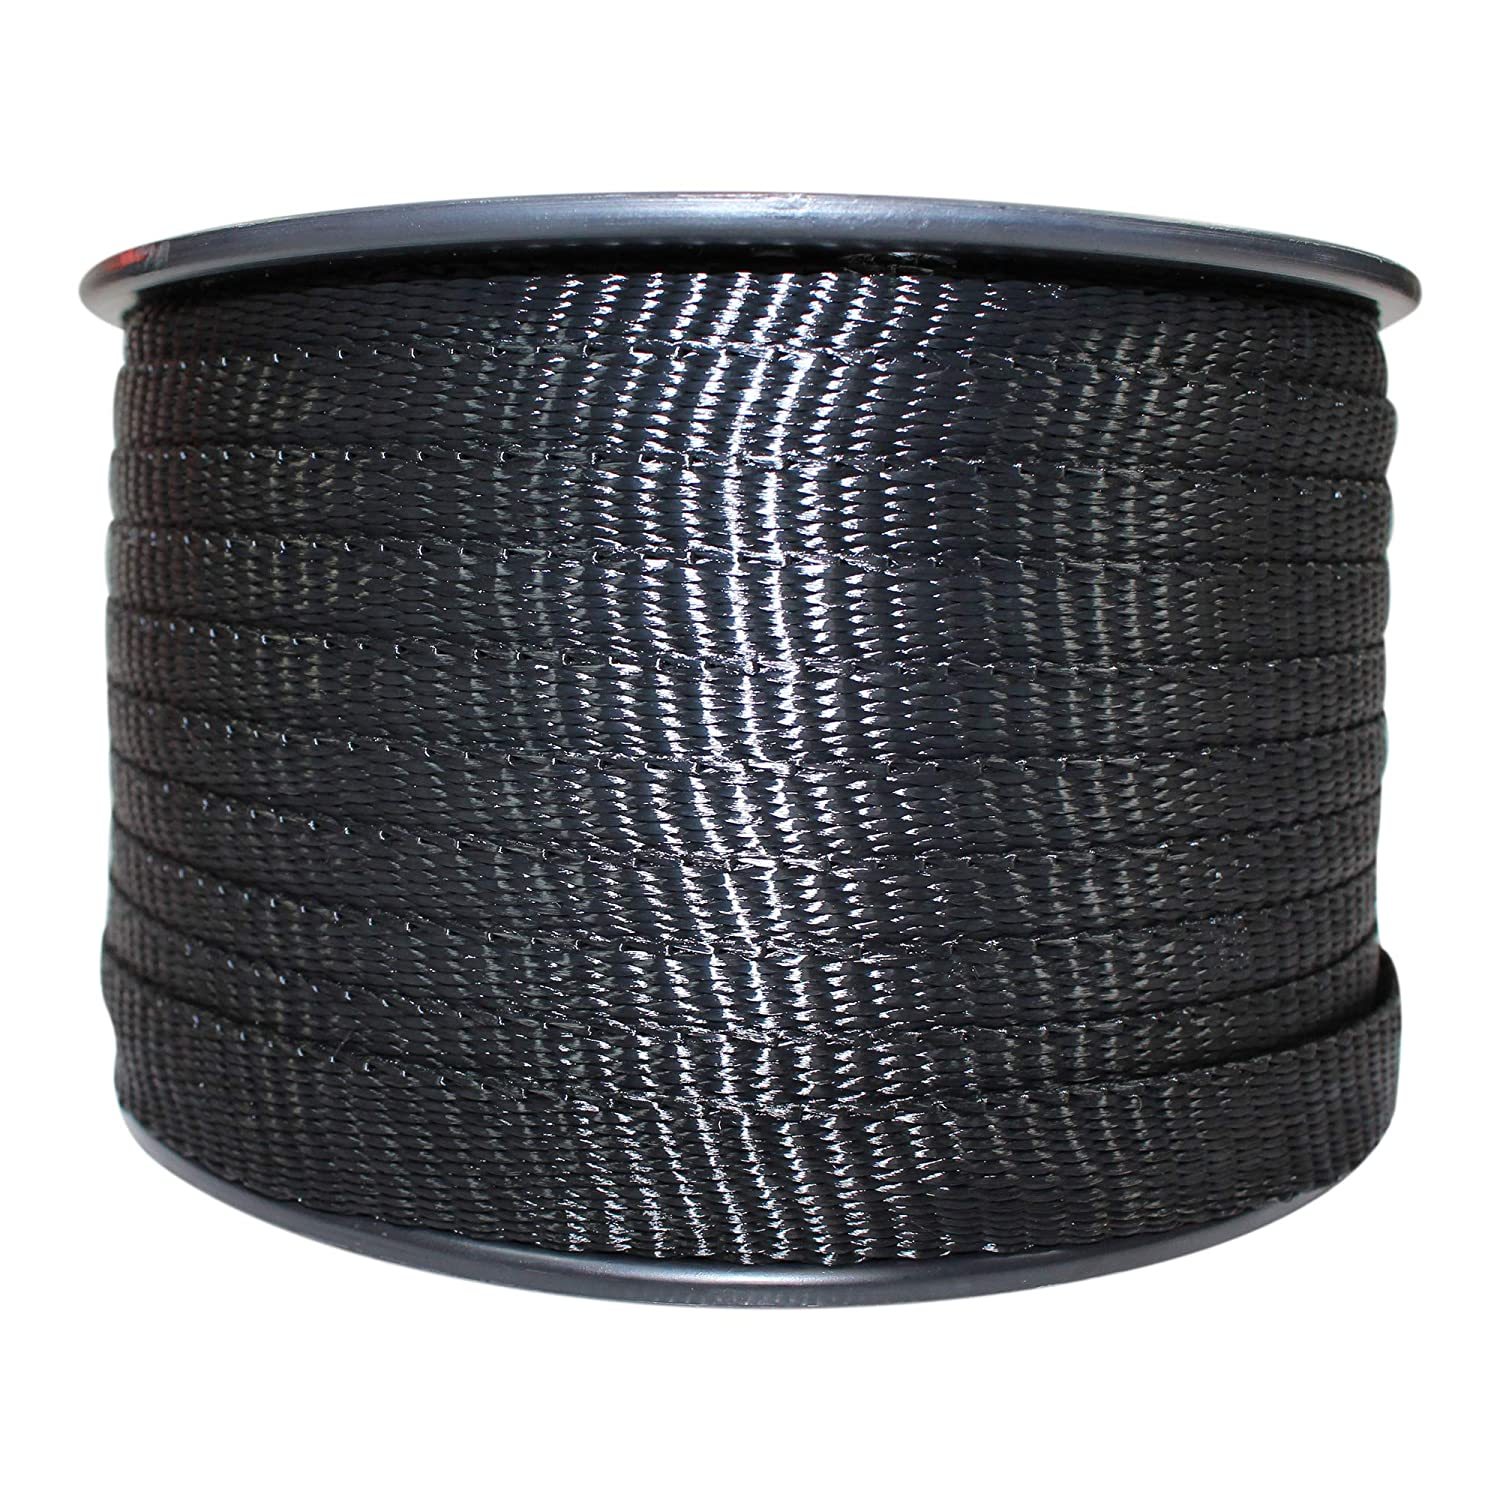 Rot Moisture Gardening Marine Commercial Flat Rope Oil Resistant Polyester Webbing - SGT KNOTS 3,000 ft - Orange Utility 5//8 inch UV Arborist Durable Polyester Pull Tape Strap